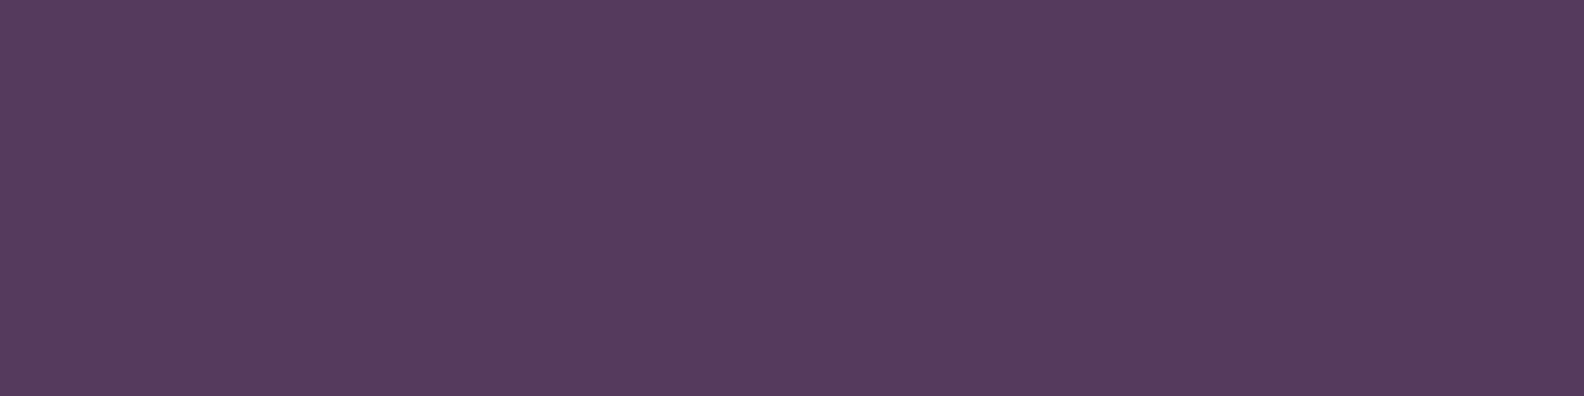 1584x396 English Violet Solid Color Background